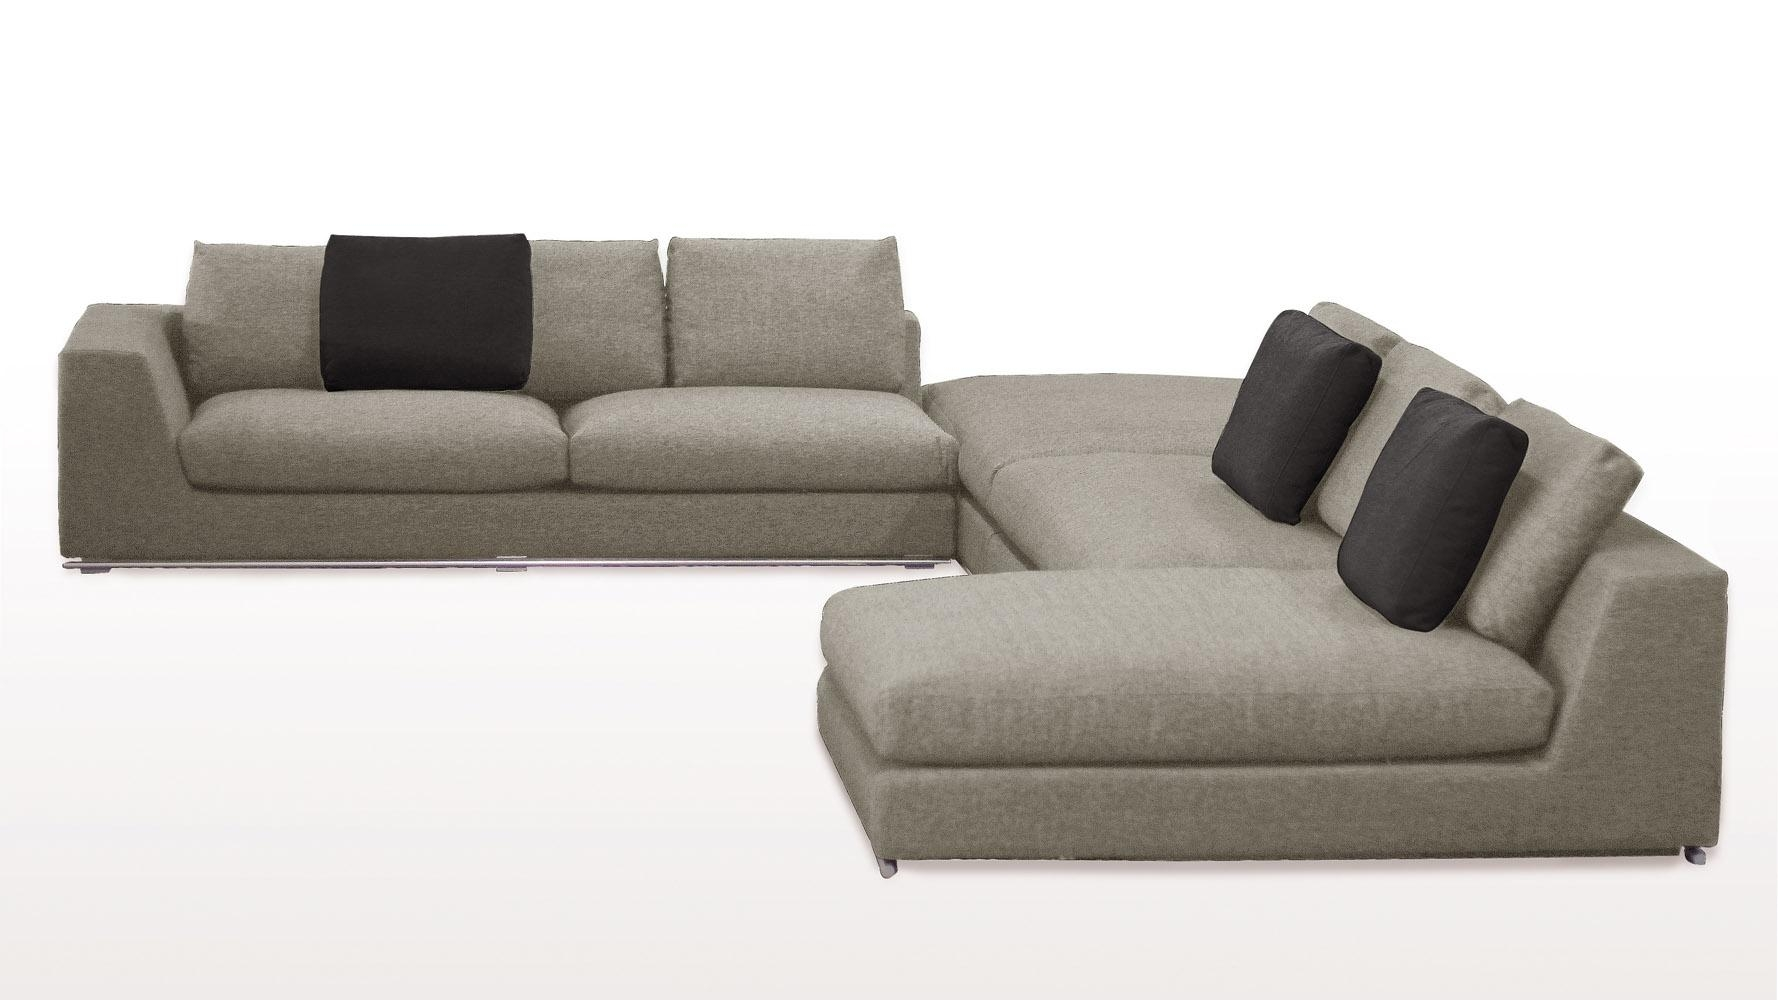 Comodo Sectional Sofa With Ottoman – Grey | Zuri Furniture Within Sofa With Chaise And Ottoman (View 4 of 20)